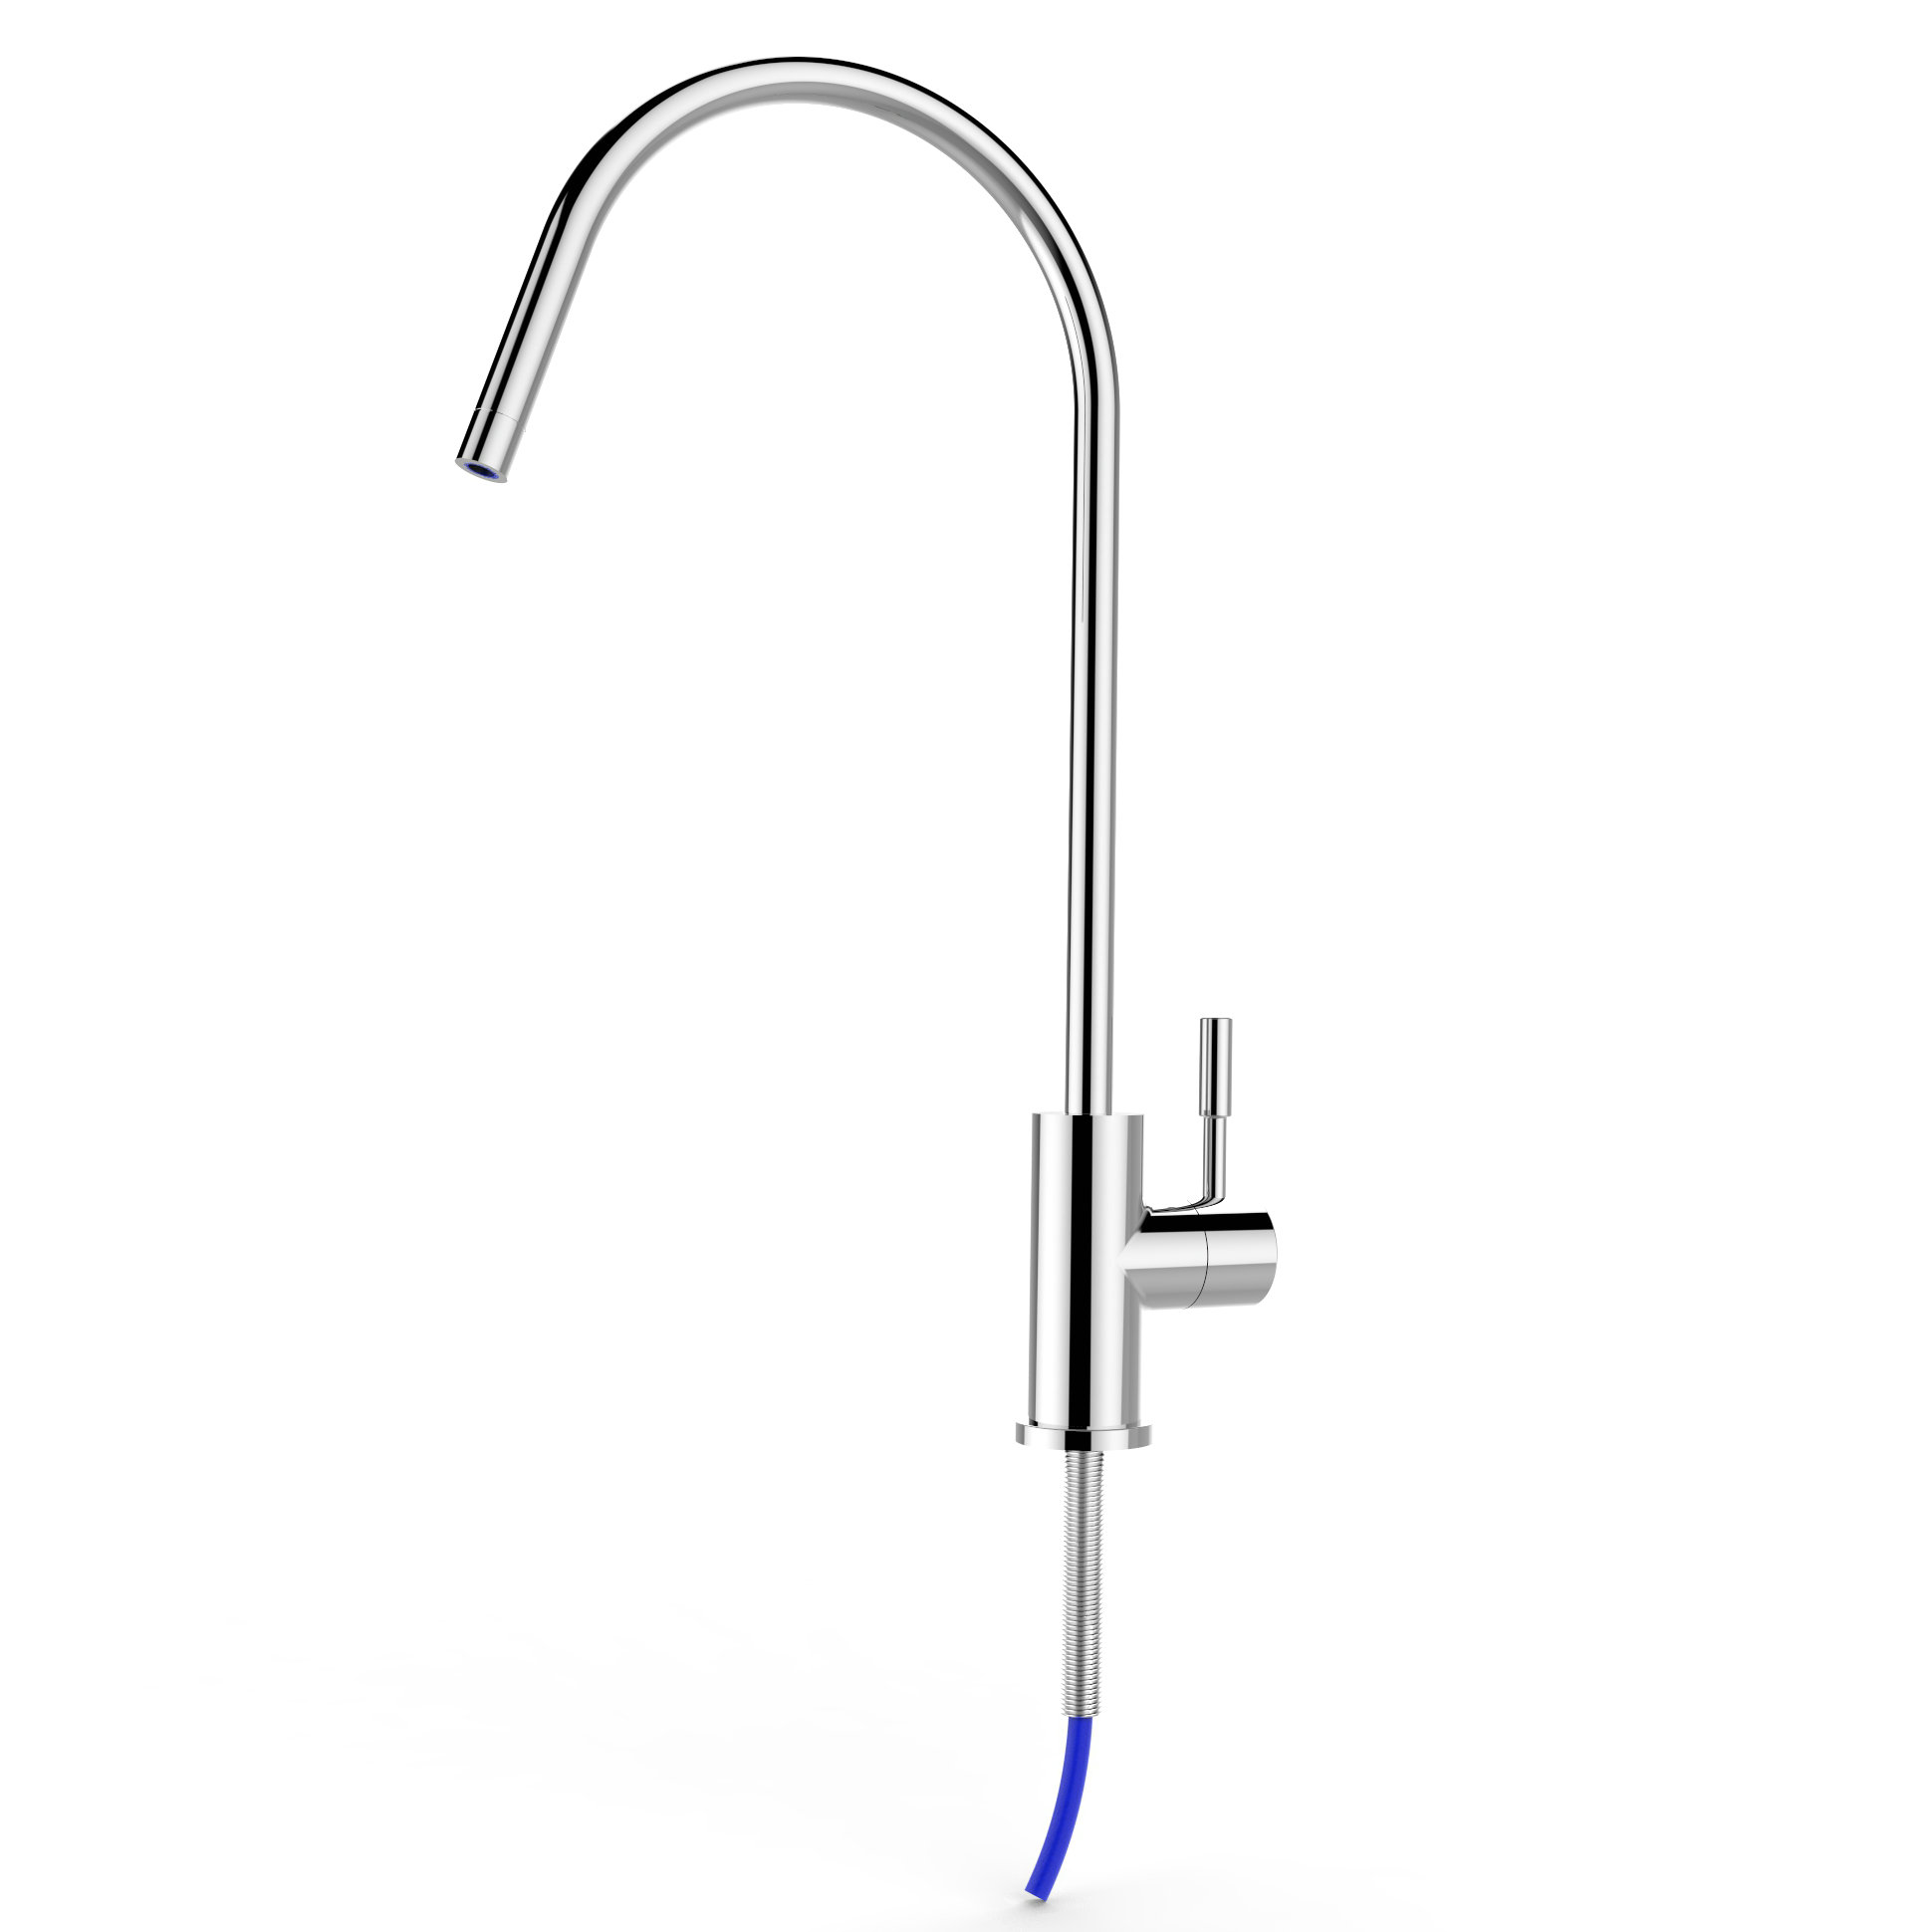 NSF Lead free Osmosis water faucet with chrome